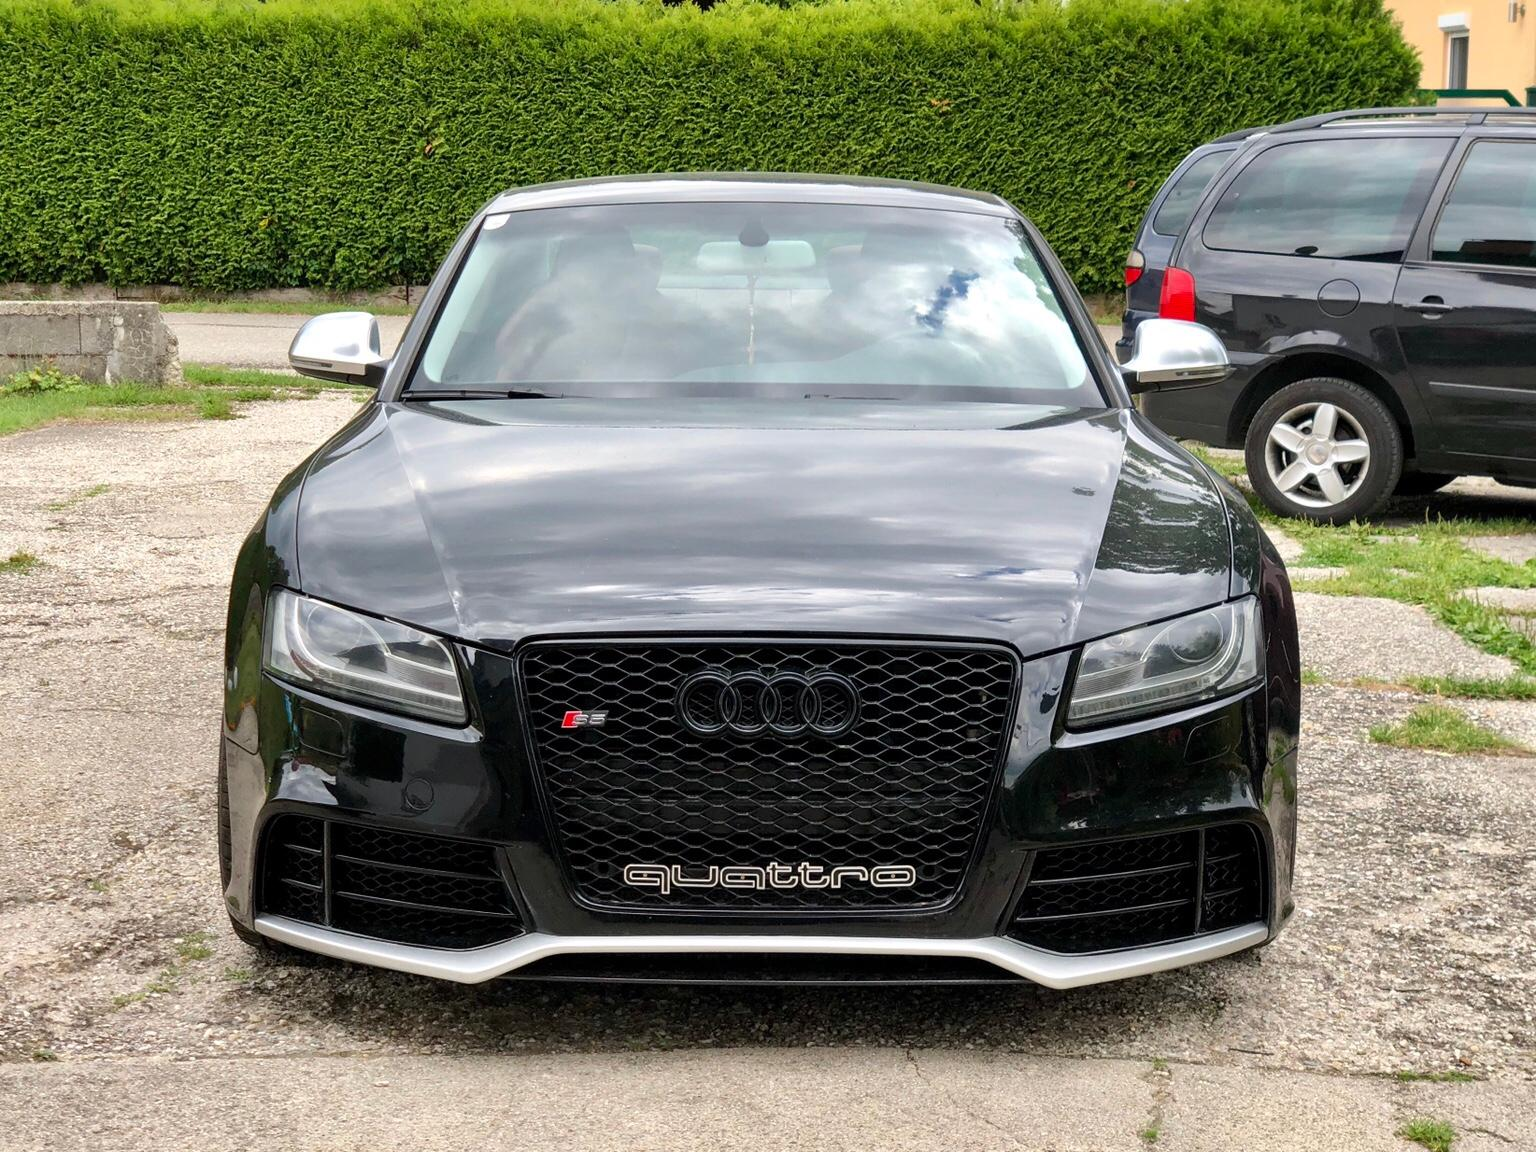 Audi A5 S5 Rs5 Stossstange Mit Grill In 5230 Mattighofen For 850 00 For Sale Shpock